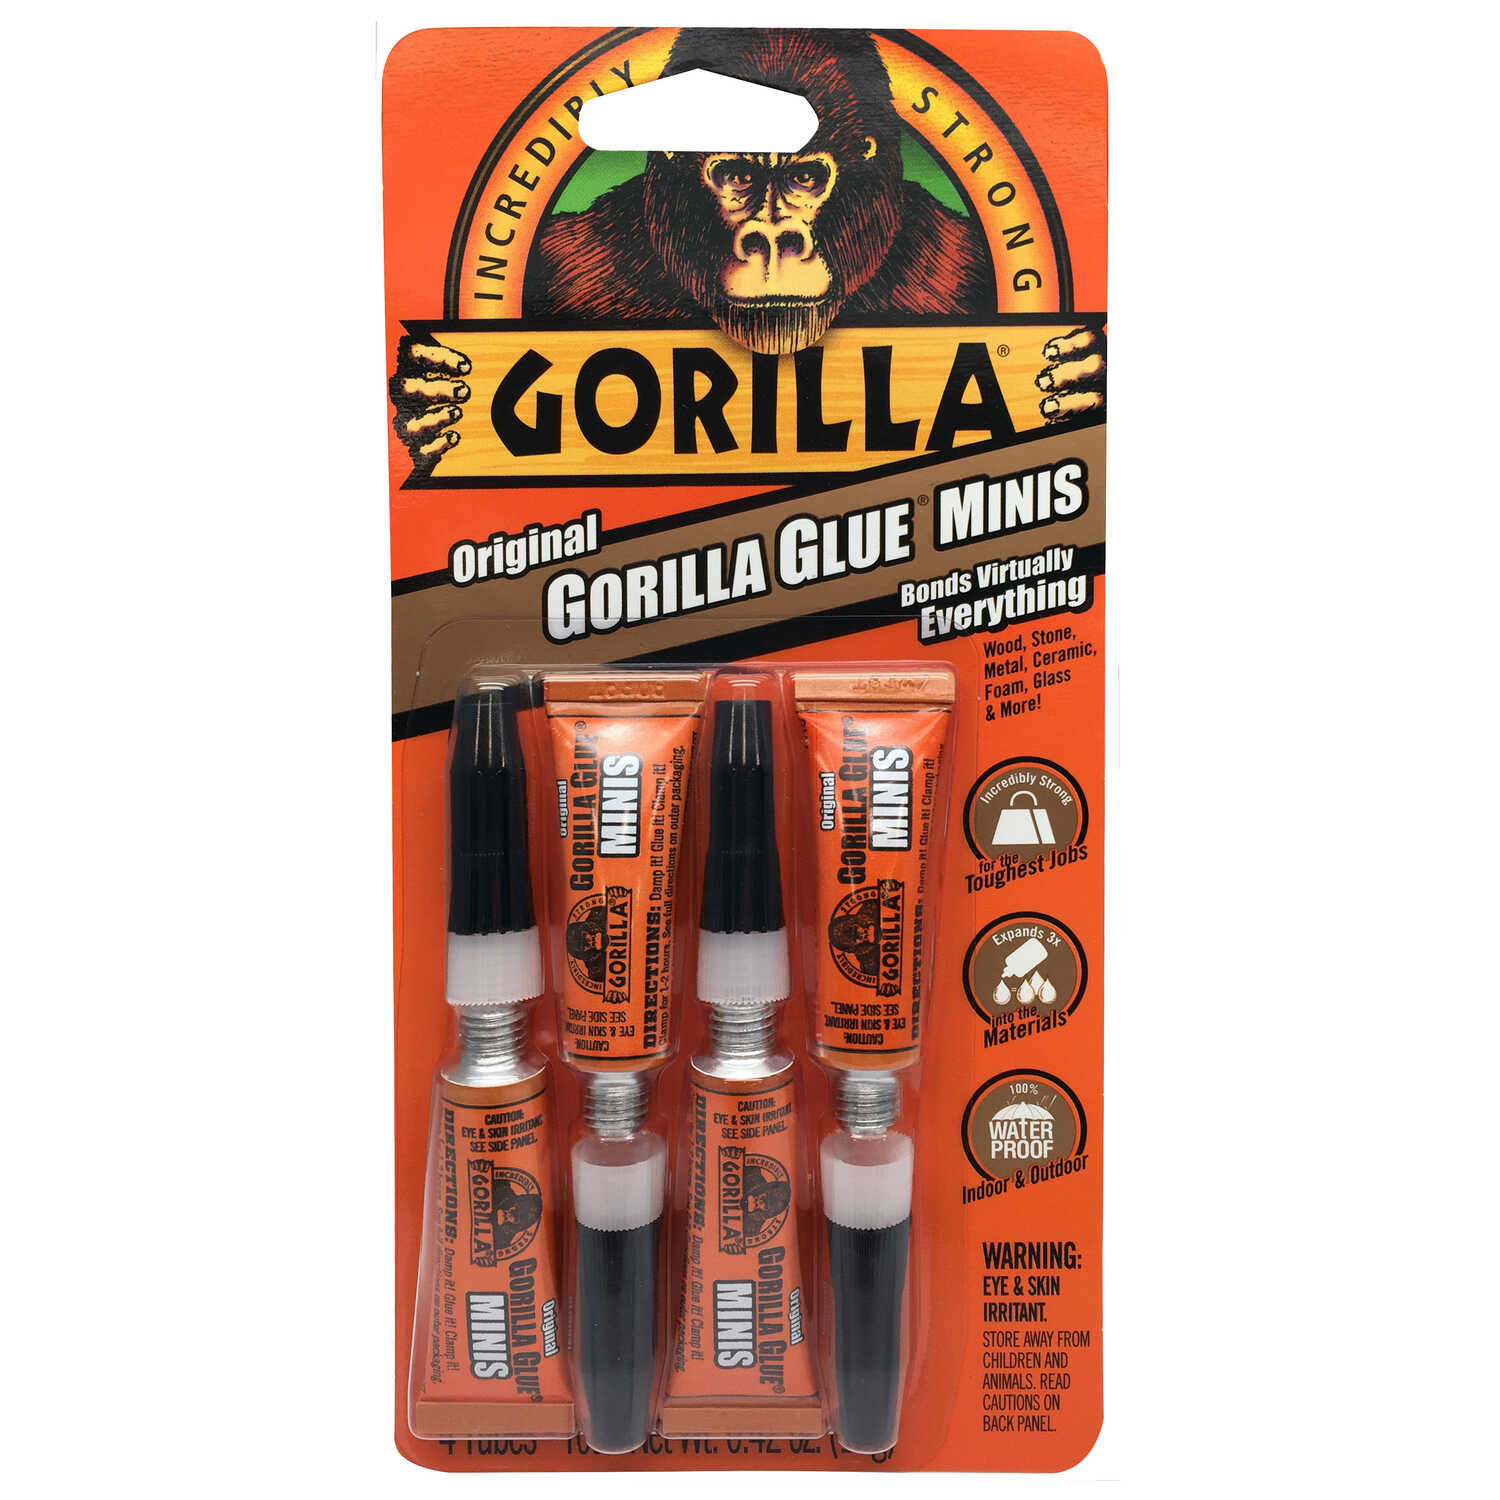 Gorilla  High Strength  Liquid  5 pk Original Gorilla Glue  .42 oz.